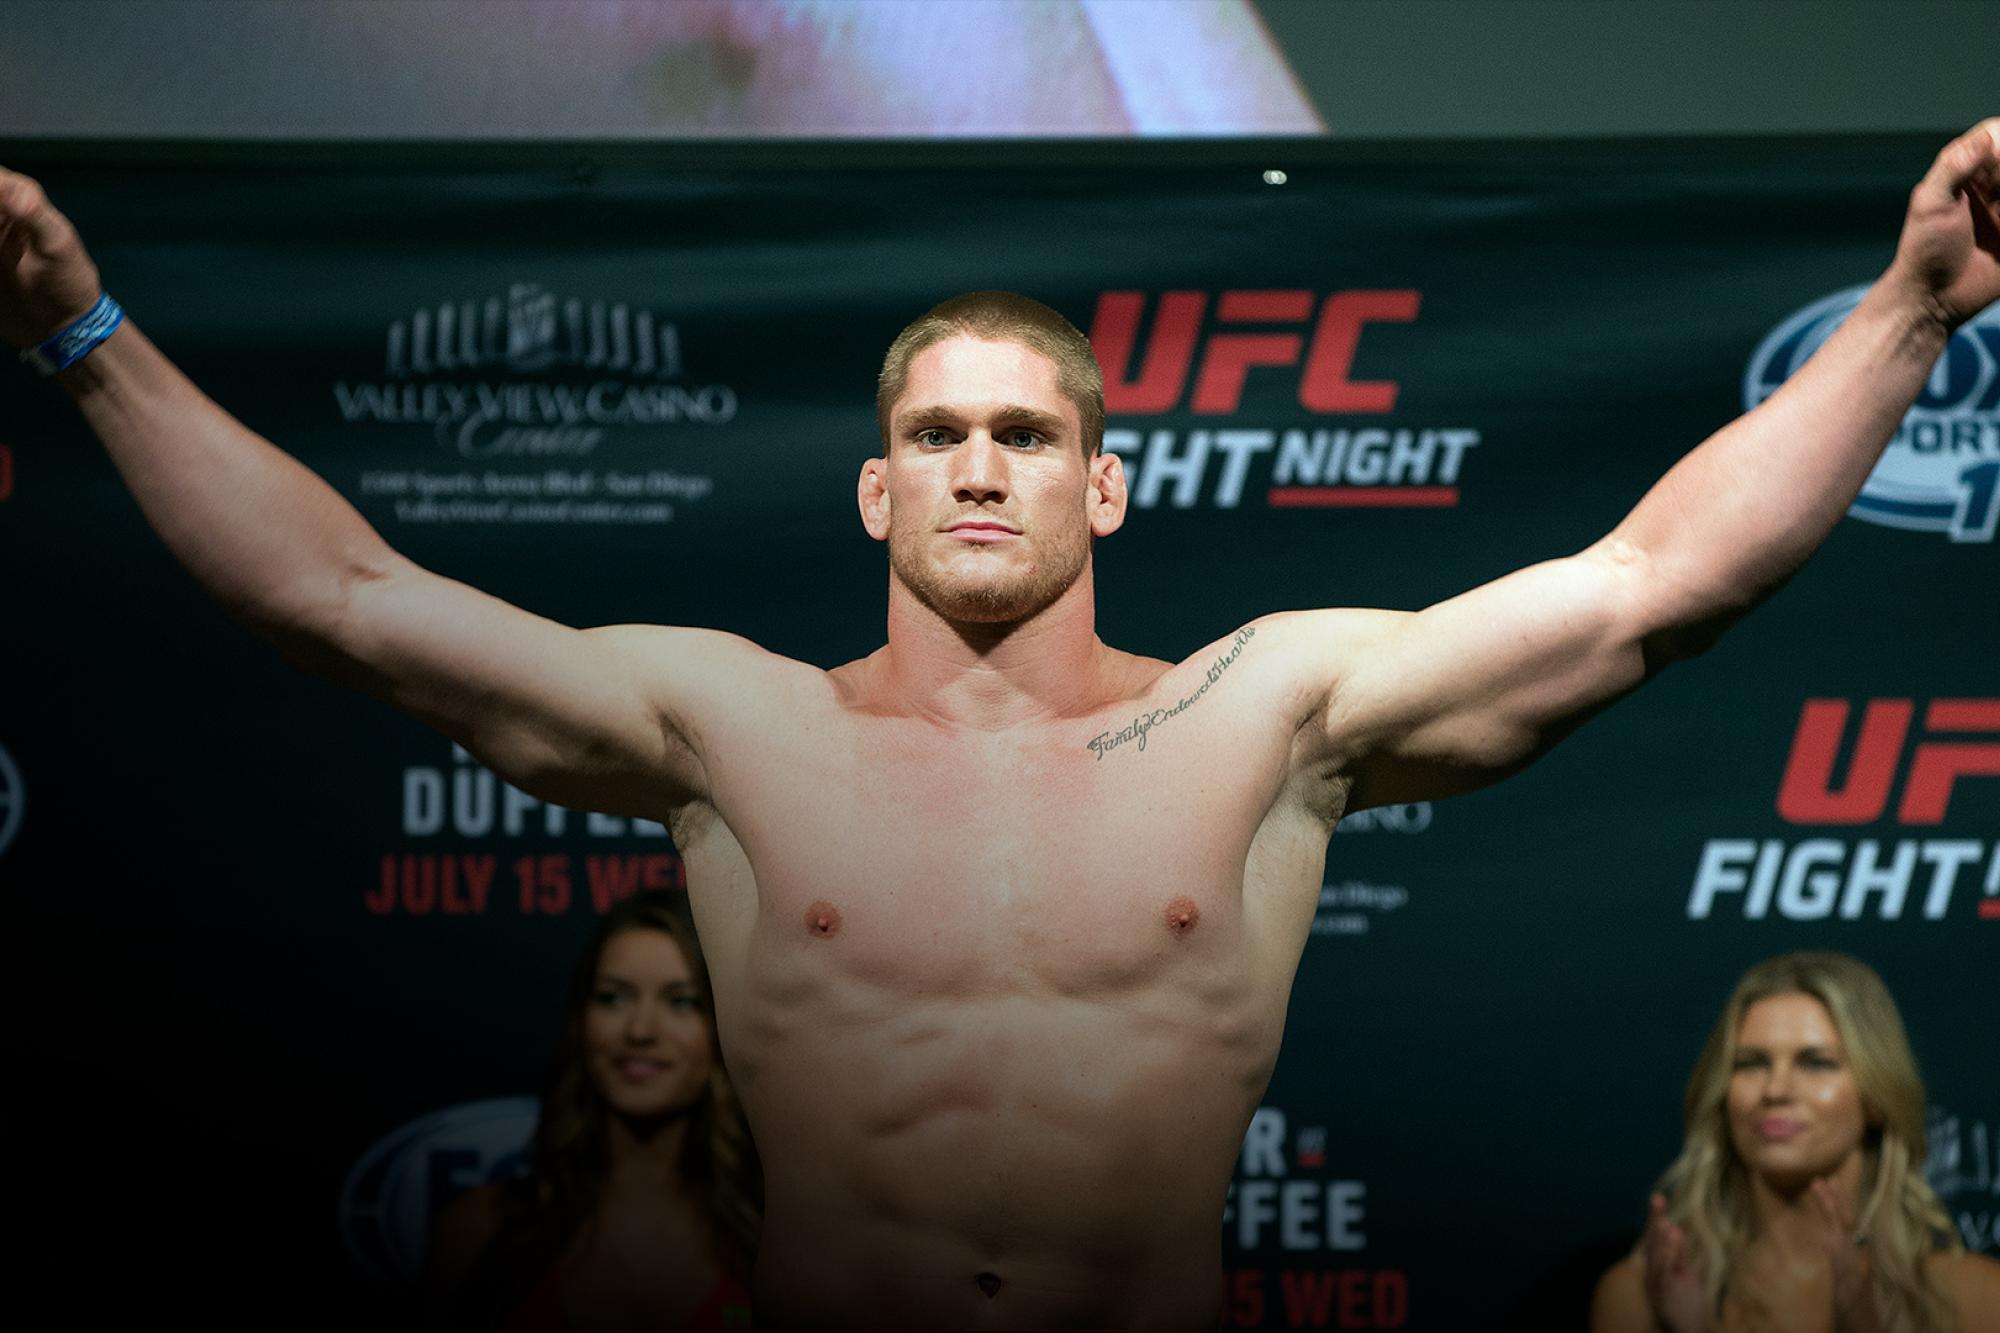 todd duffee vs jeff hughestodd duffee vs jeff hughes, todd duffee instagram, todd duffee sherdog, todd duffee vs, todd duffee now, todd duffee ufc, todd duffee mma, todd duffee tapology, todd duffee wiki, todd duffee anthony hamilton, todd duffee irish, todd duffee height, todd duffee jeff hughes, todd duffee ufc instagram, todd duffee vs frank mir, todd duffee vs phil de fries, todd duffee net worth, todd duffee next fight, todd duffee return, todd duffee batman vs superman